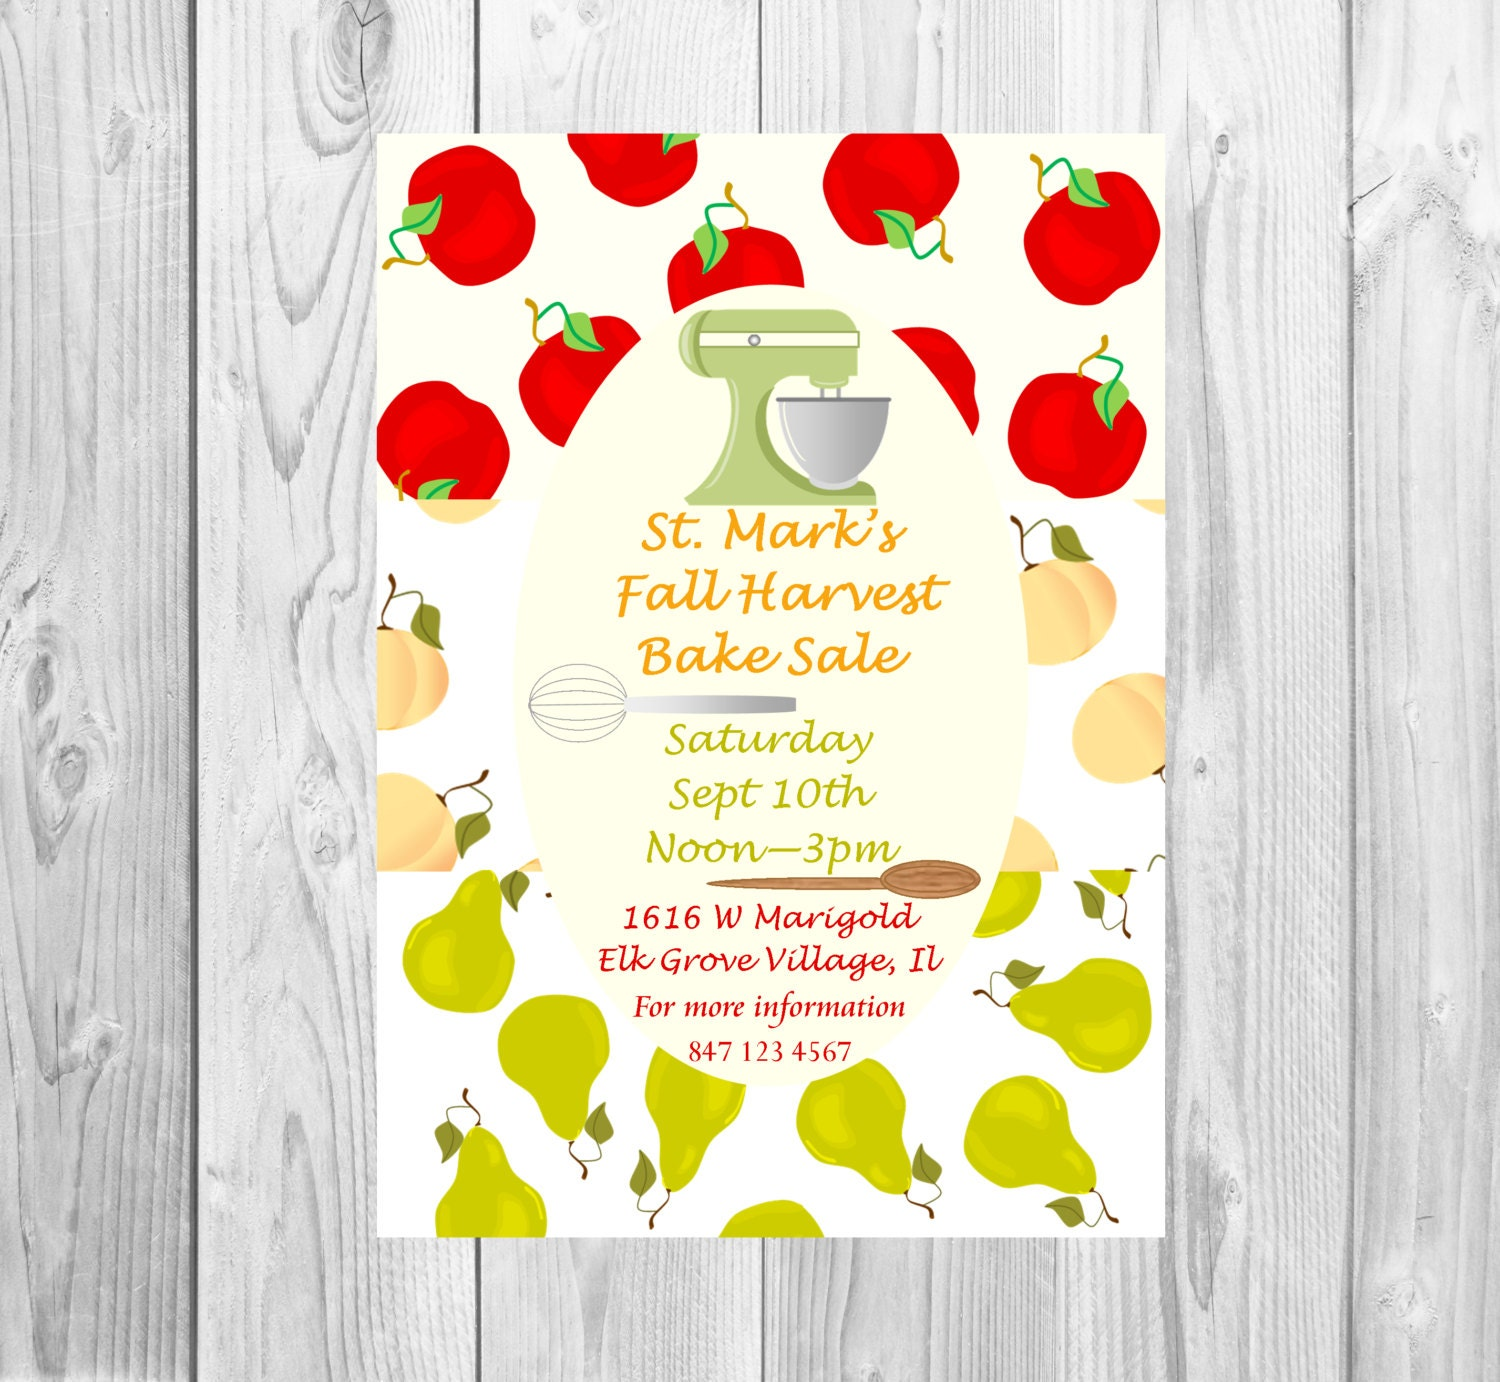 church flyer school bake flyer fall harvest baking contest pie competition apples peaches and pears posters sized to order perfect for invites